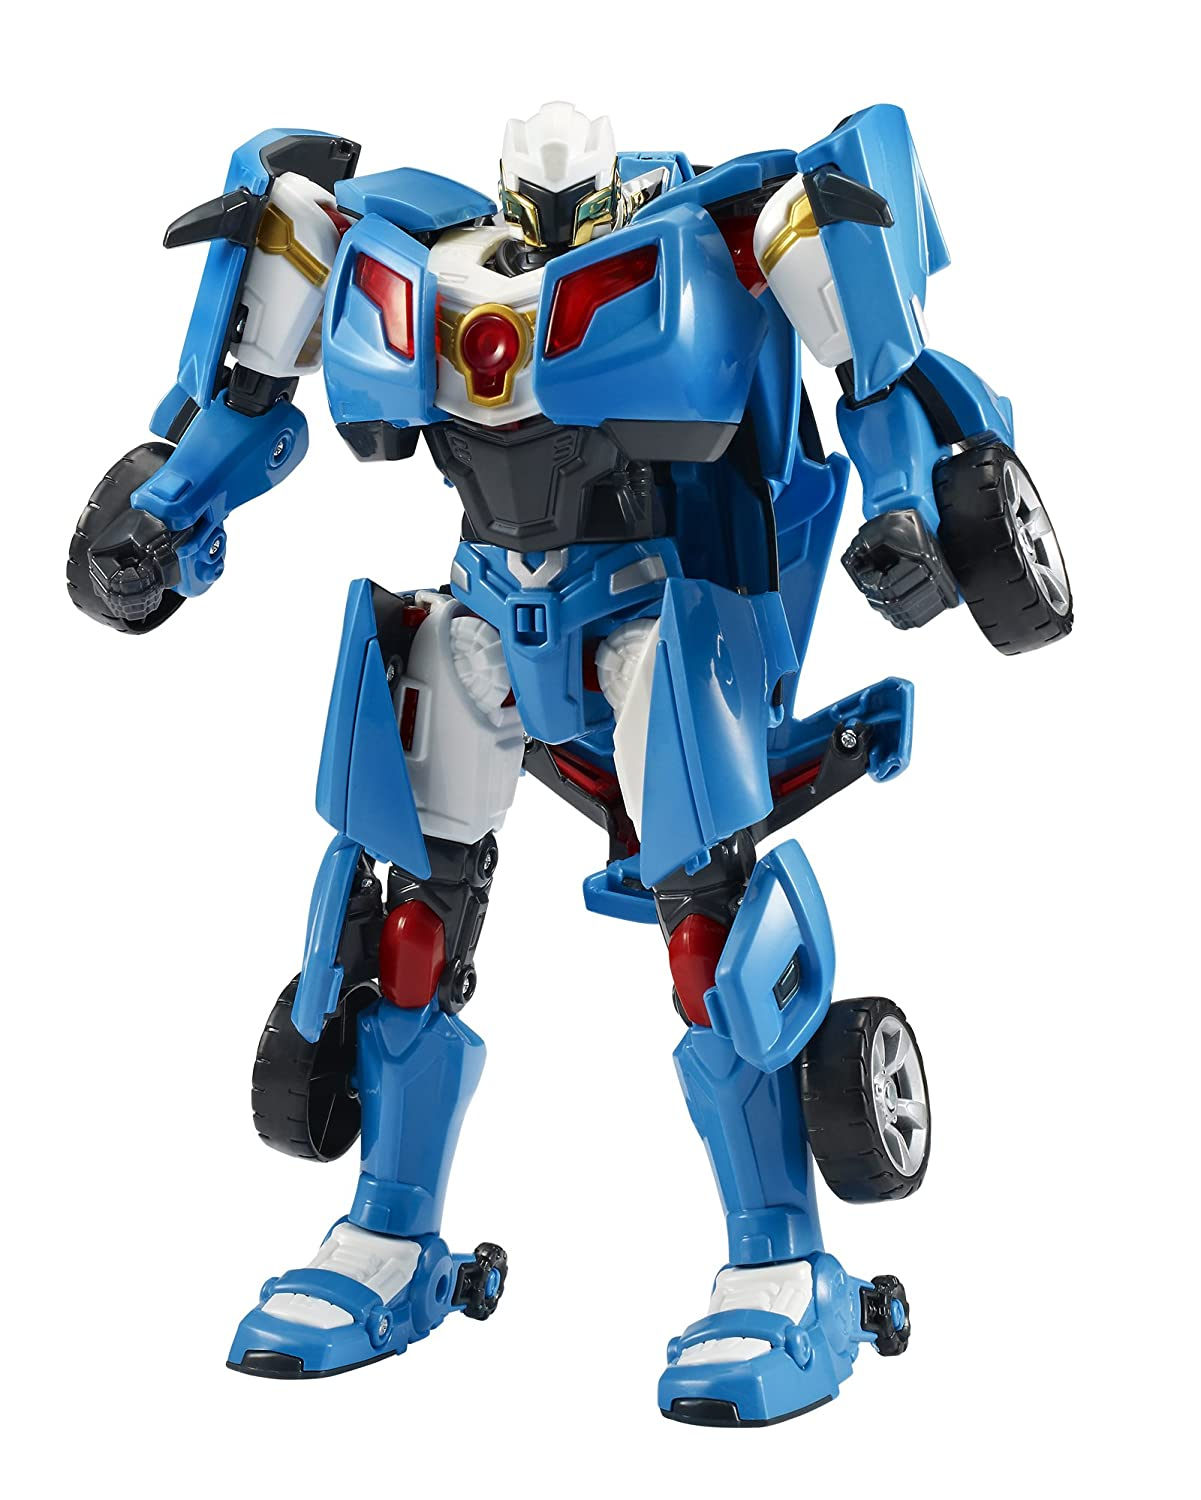 Tobot Youngtoys Evolution Y Transforming Robot Car To Quatran Animation Character Toys Games